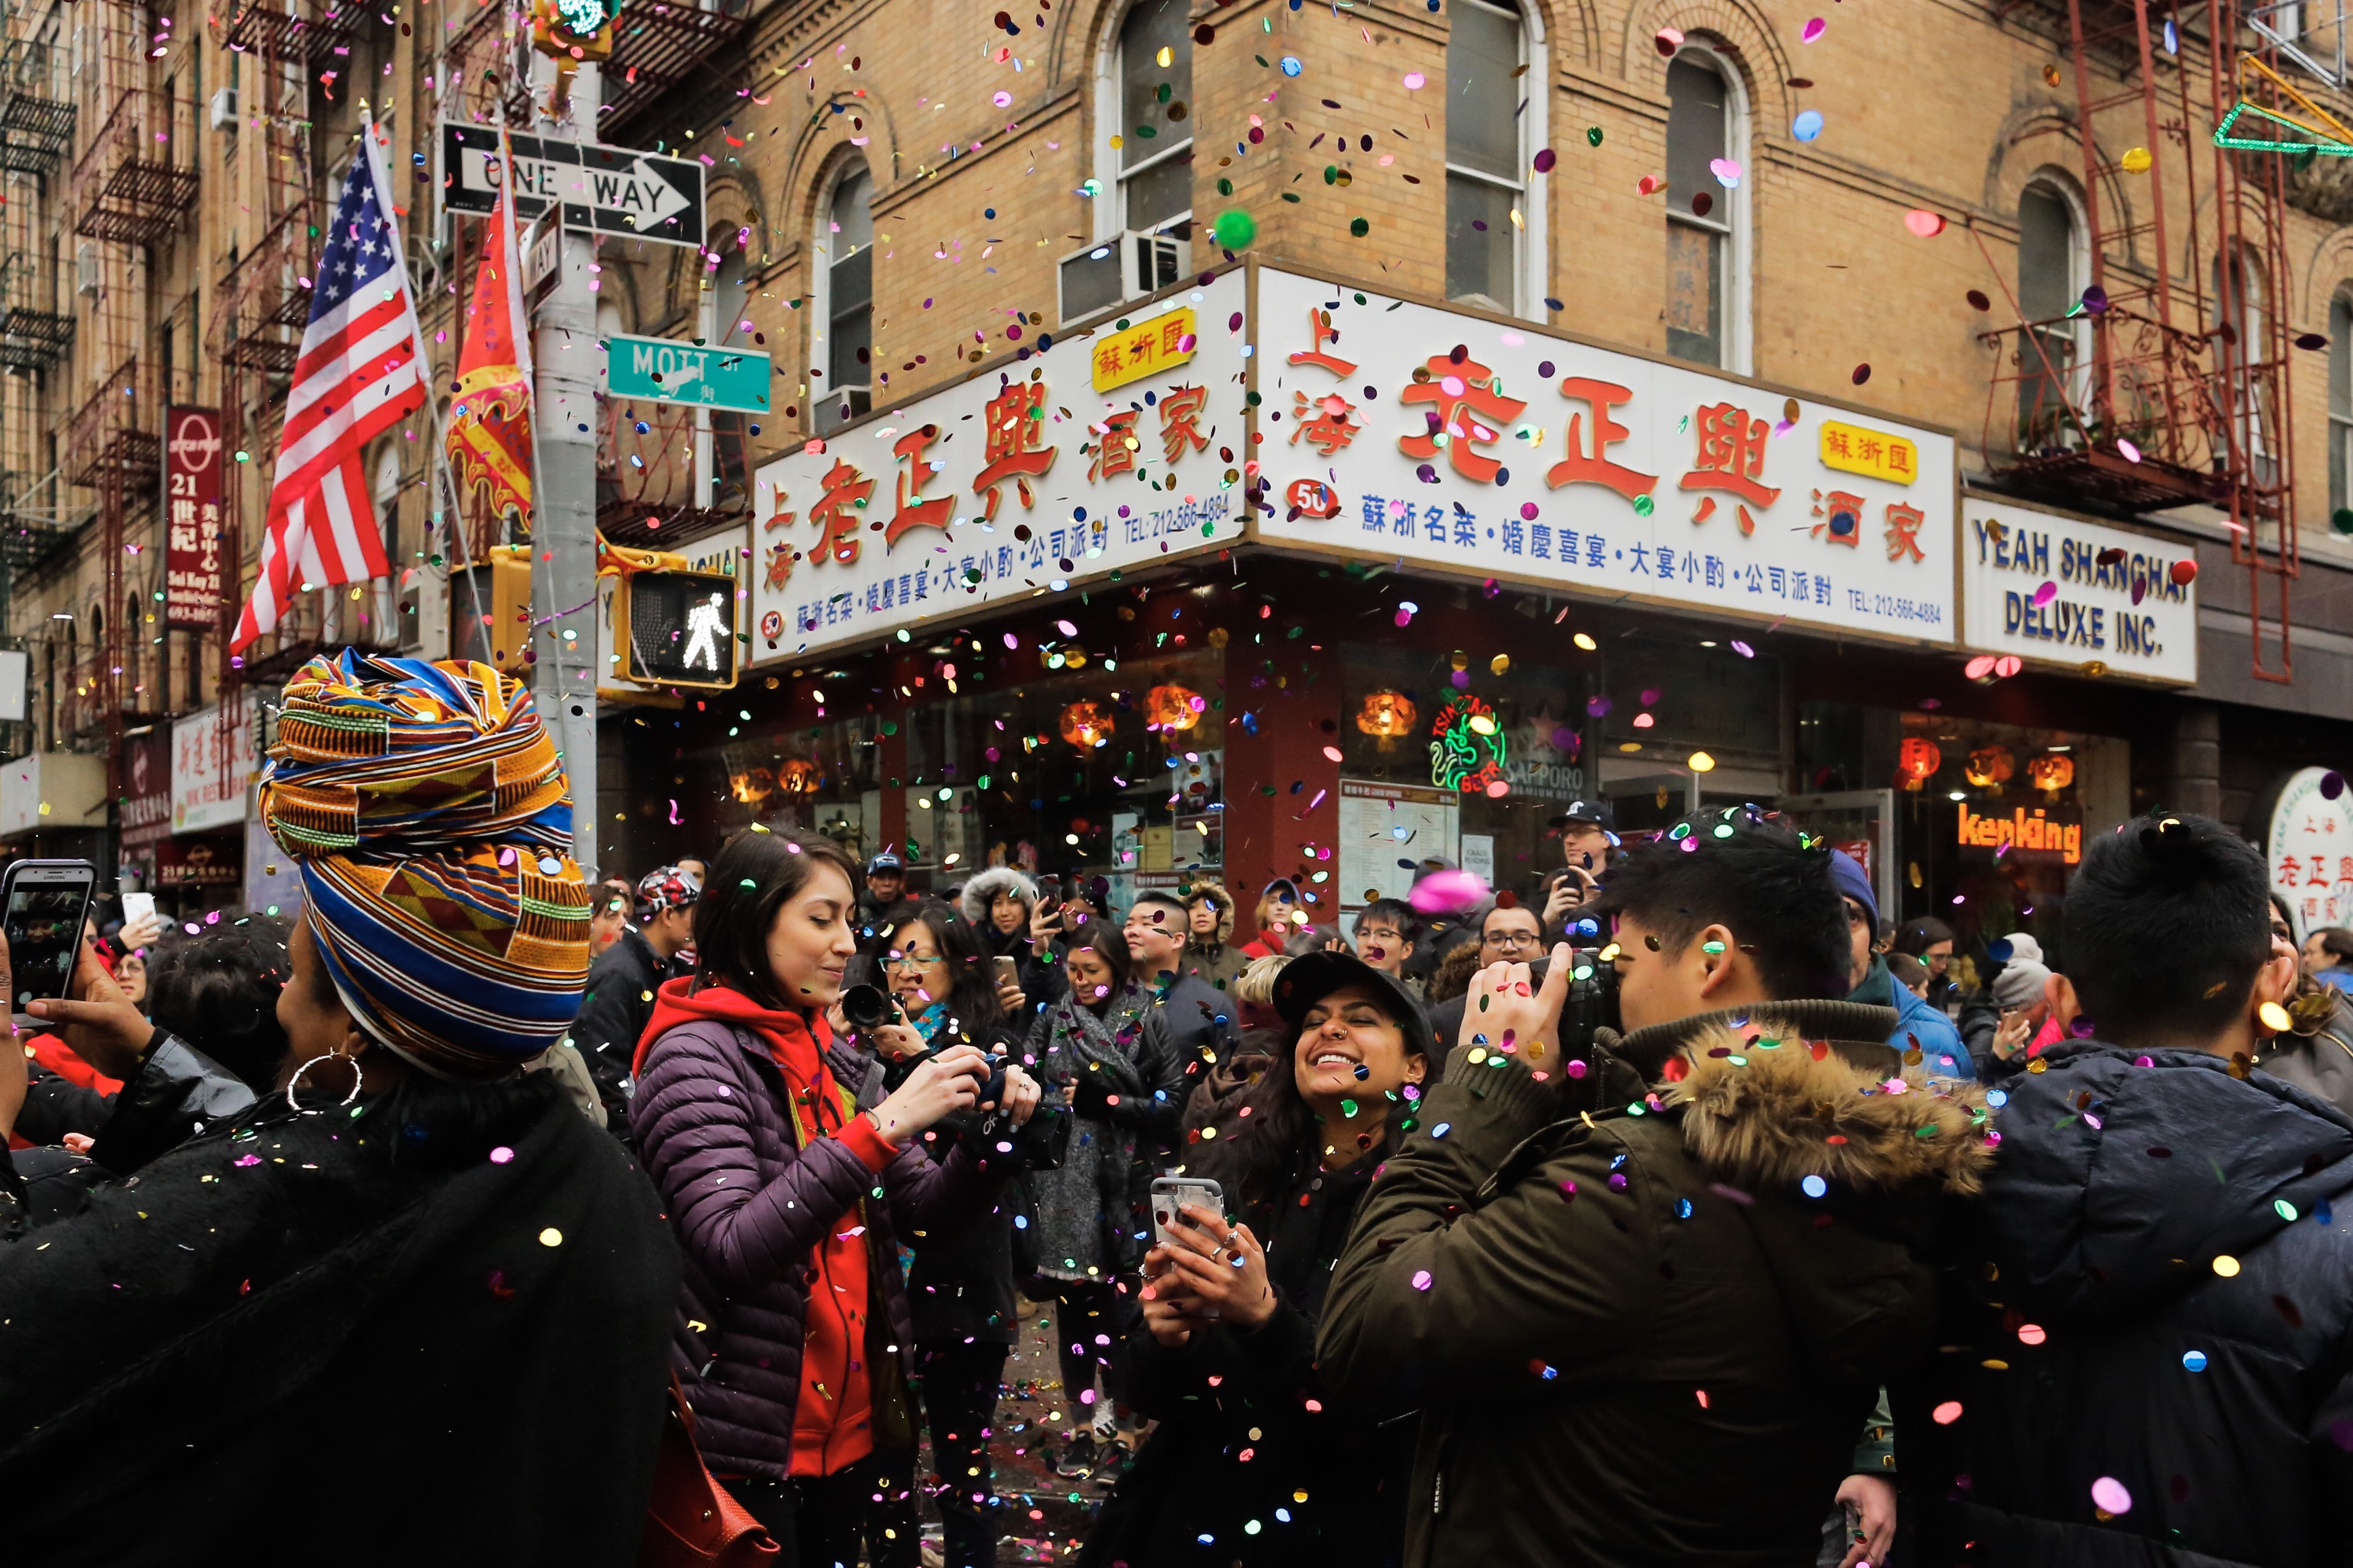 People take part in the Chinese Lunar New Year parade in Chinatown on February 25, 2018 in New York City (Getty Images)